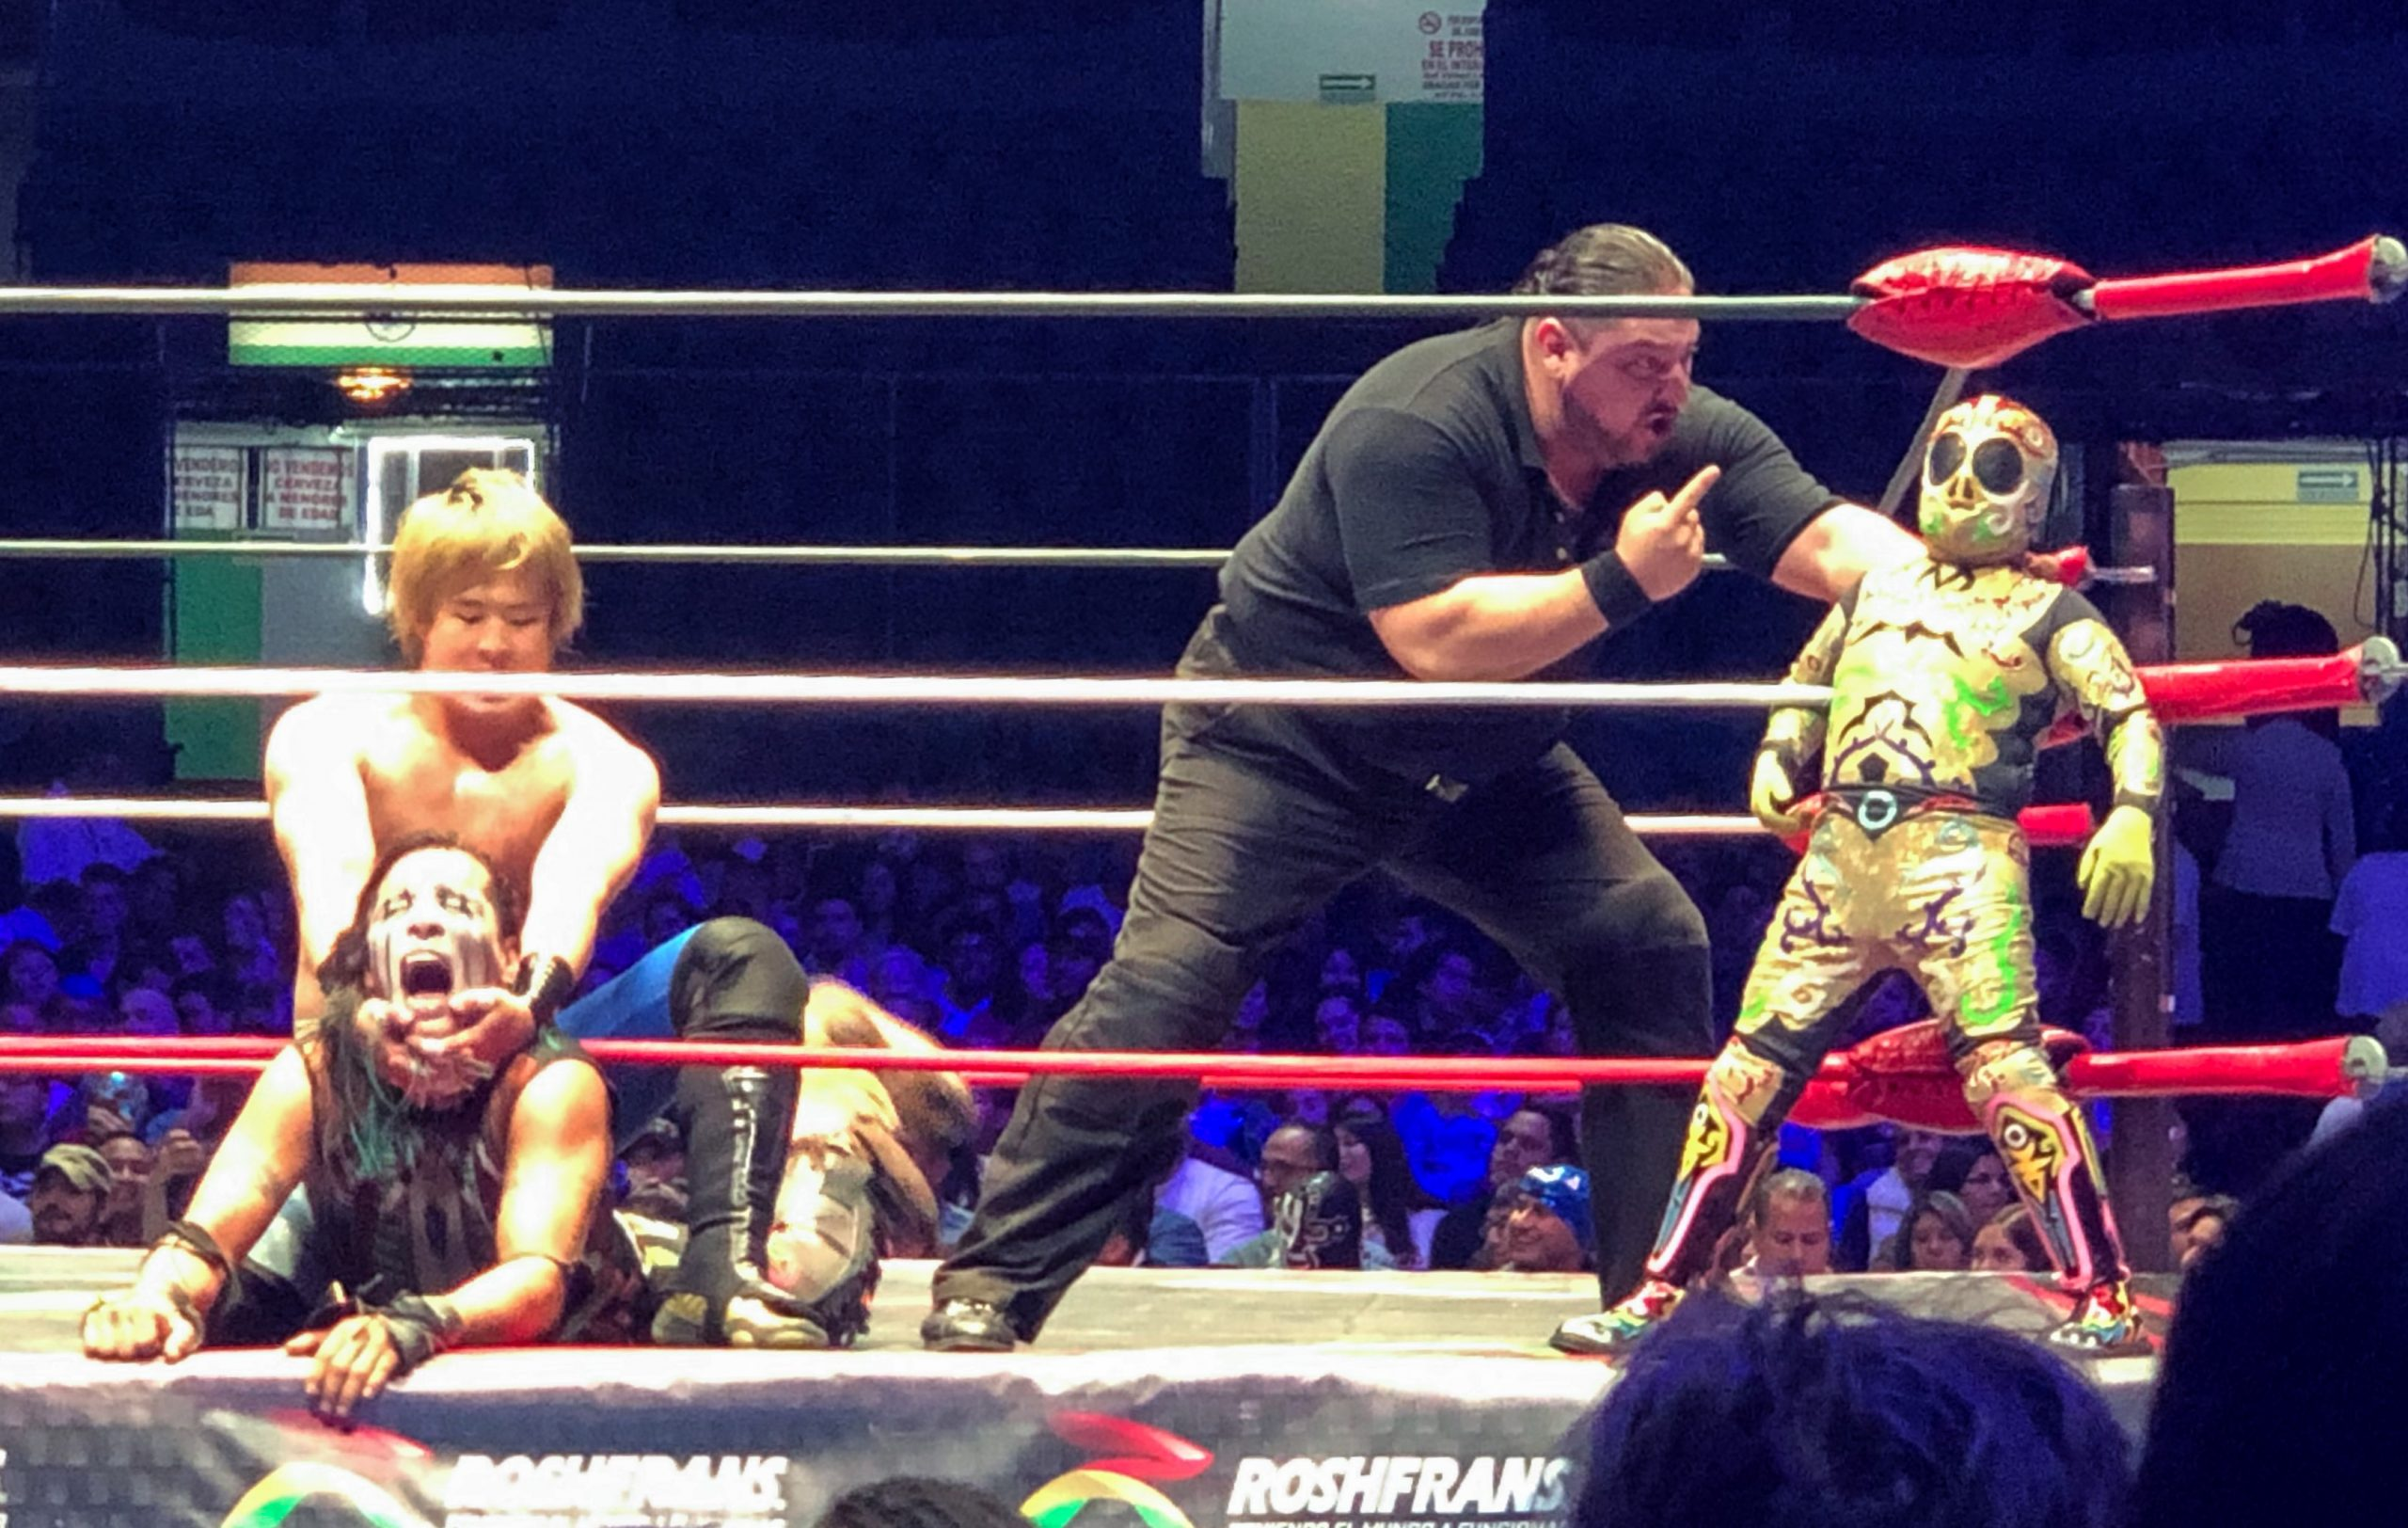 Luchador scolded by official